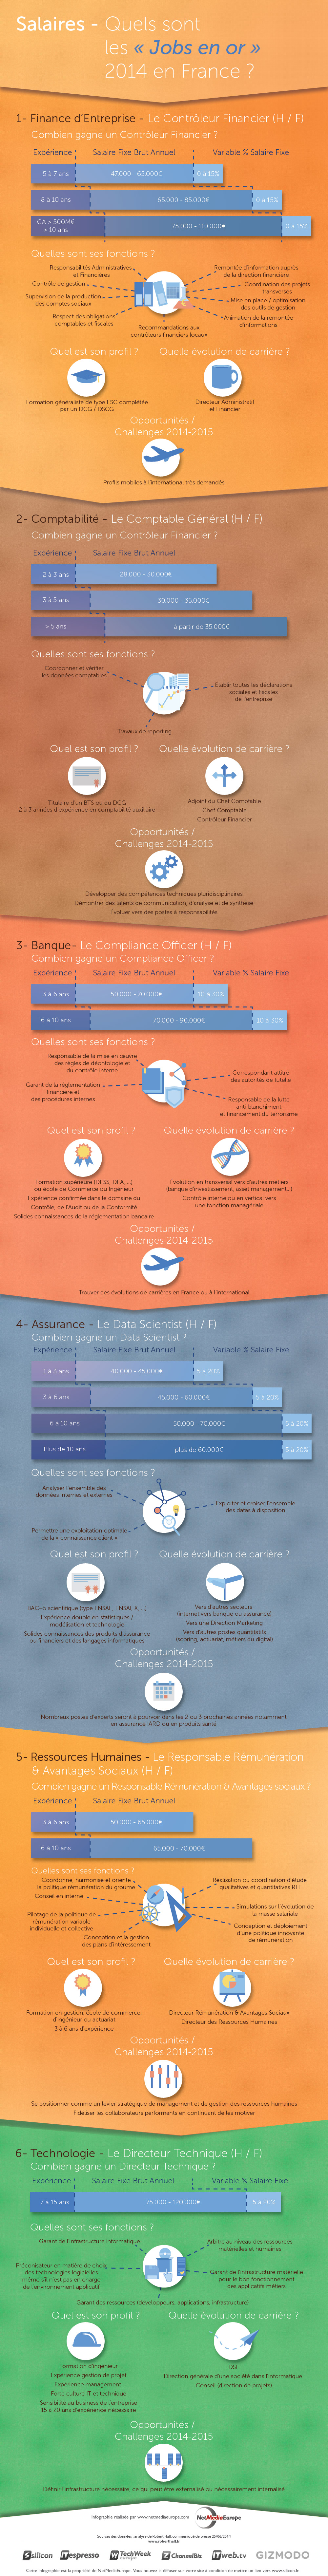 infographie jobs data scientist